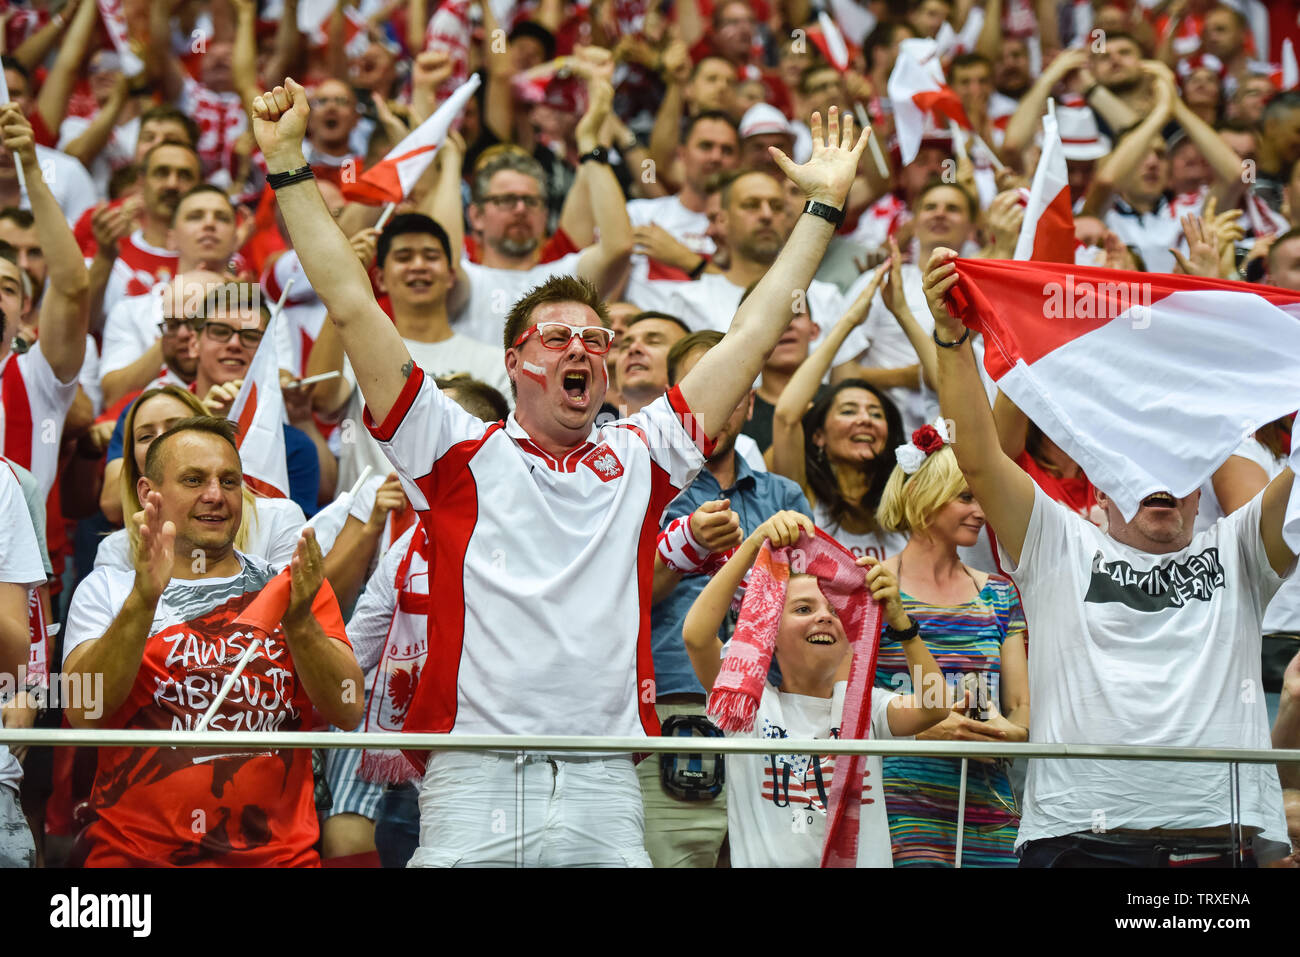 WARSAW, POLAND - JUNE 10, 2019: Qualifications Euro 2020  match Poland - Israel 4:0. Supporters of Poland joy after scoring goal. - Stock Image